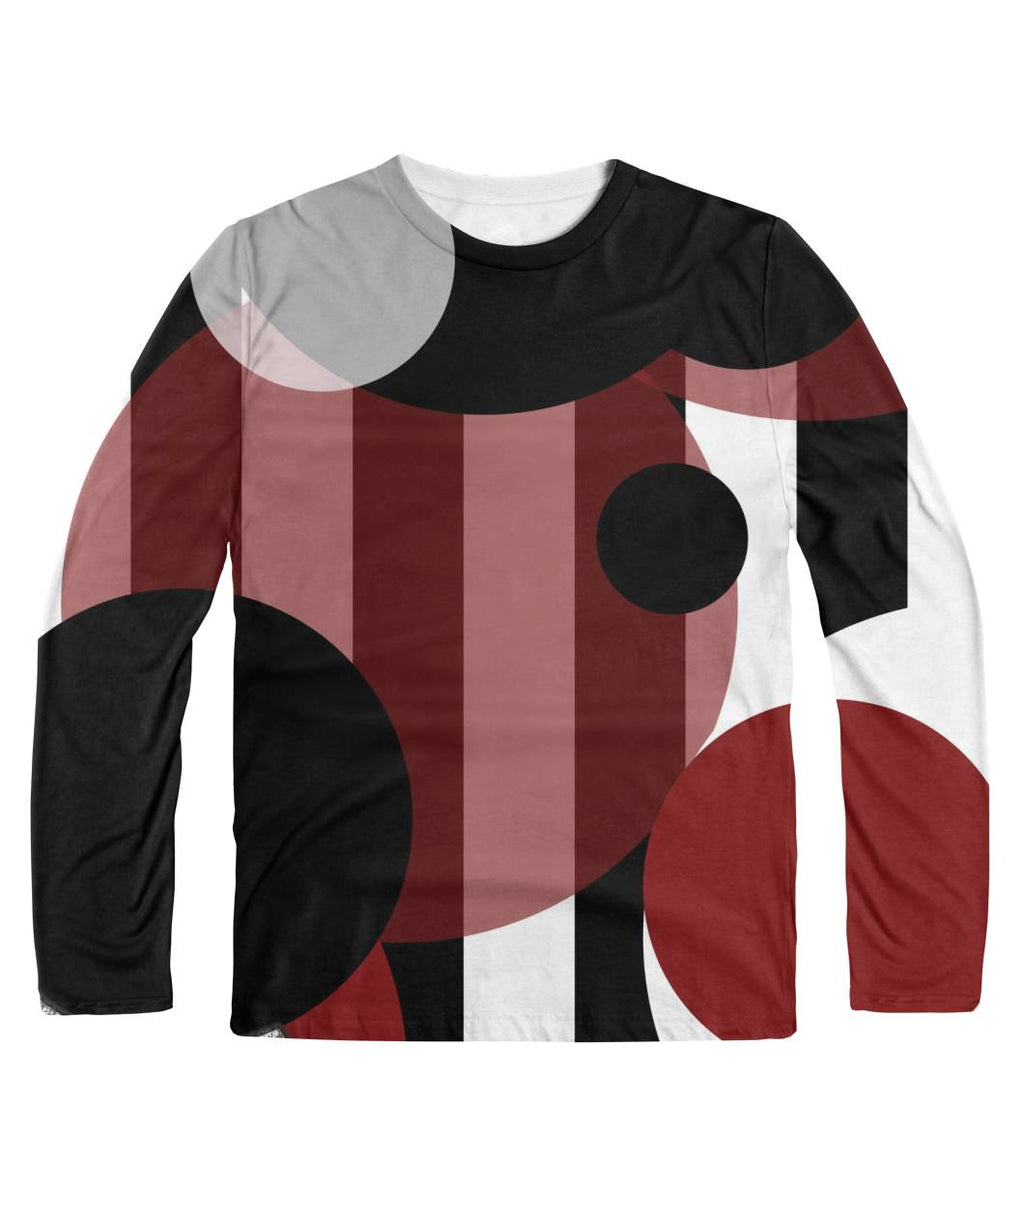 Black White Stripes Dots Longsleeve Sublimation Long Sleeve